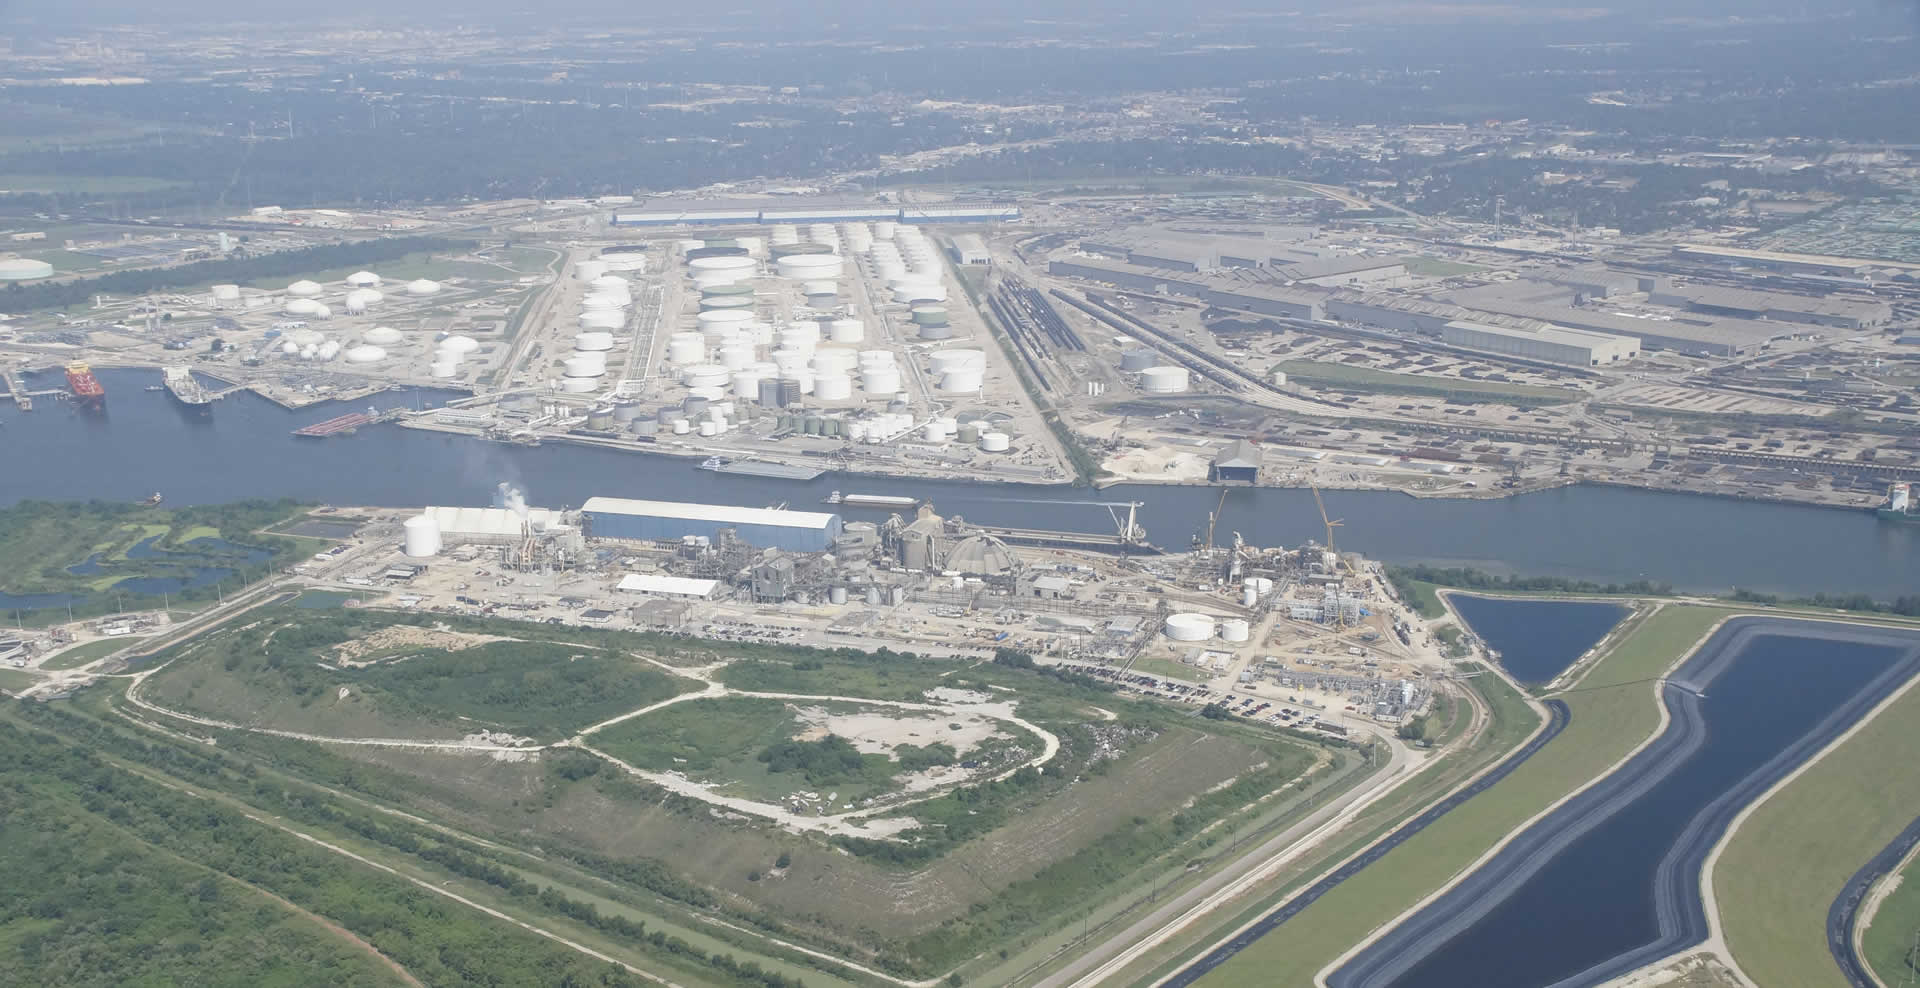 Aerial view of PCI Nitrogen, the Houston Ship Channel, and the surrounding area.